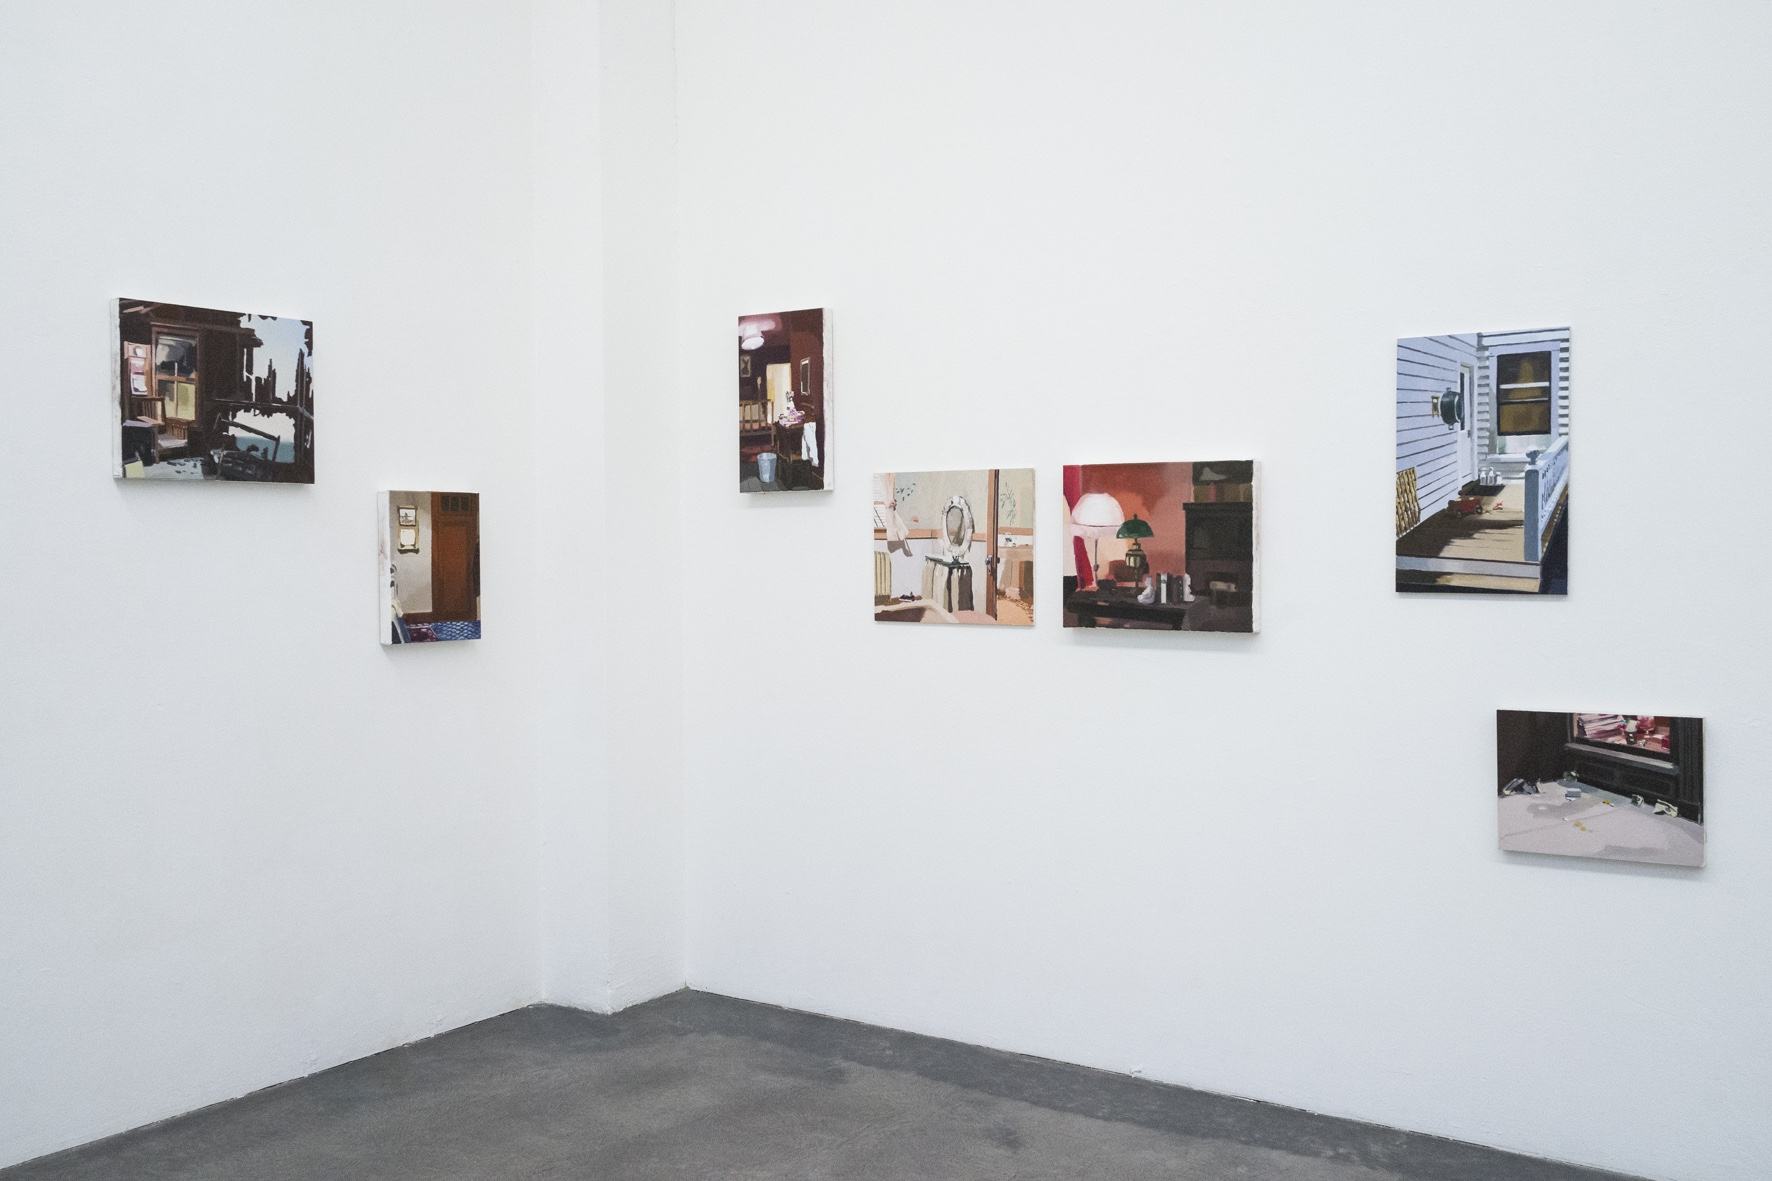 Galerie Nanna Preußners: Mindscapes, 2017, curated by Nikola Irmer